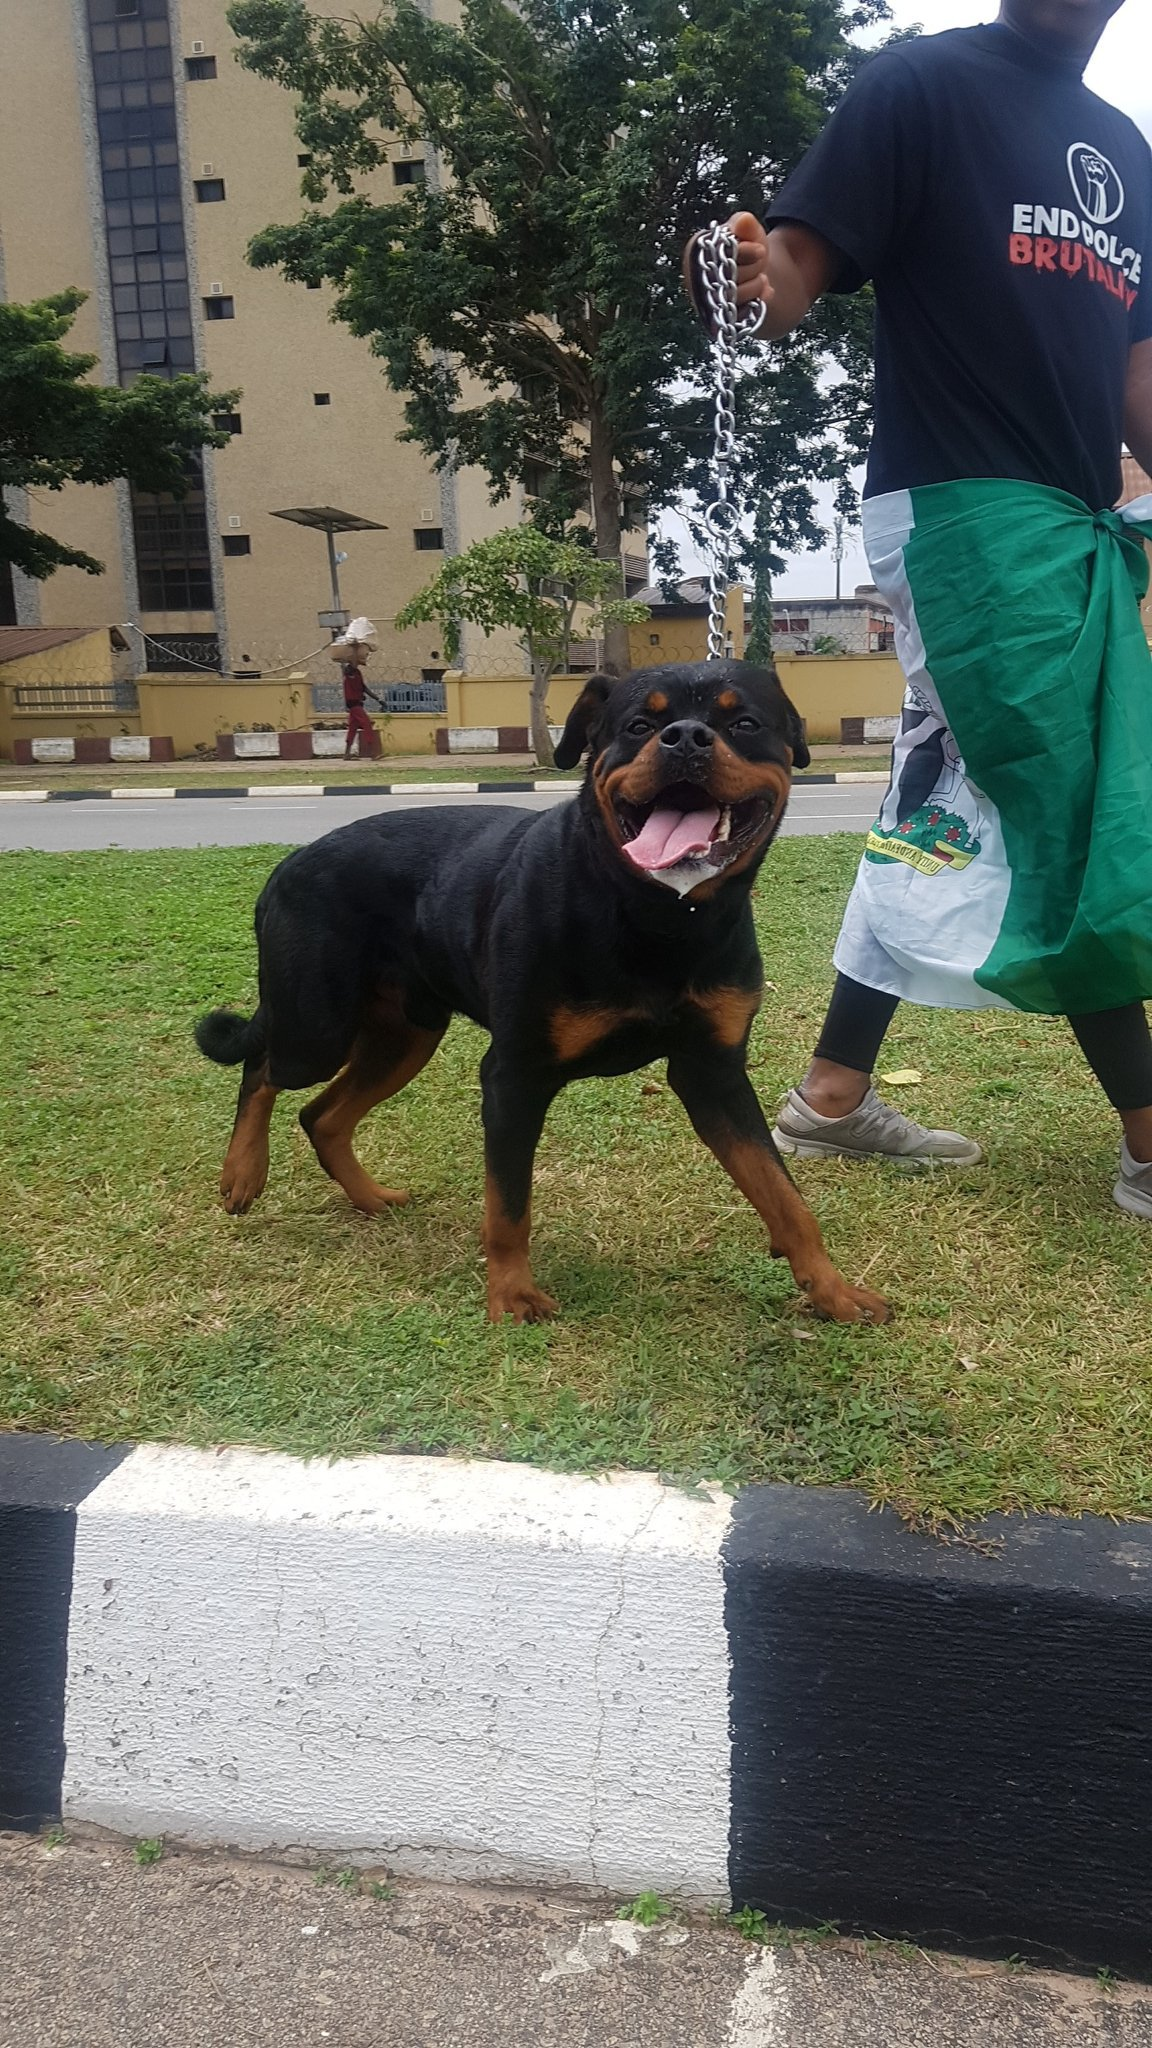 #EndSARS: Thugs allegedly back down after protesters arrived with fierce dogs at protest location in Abuja (photo) 9